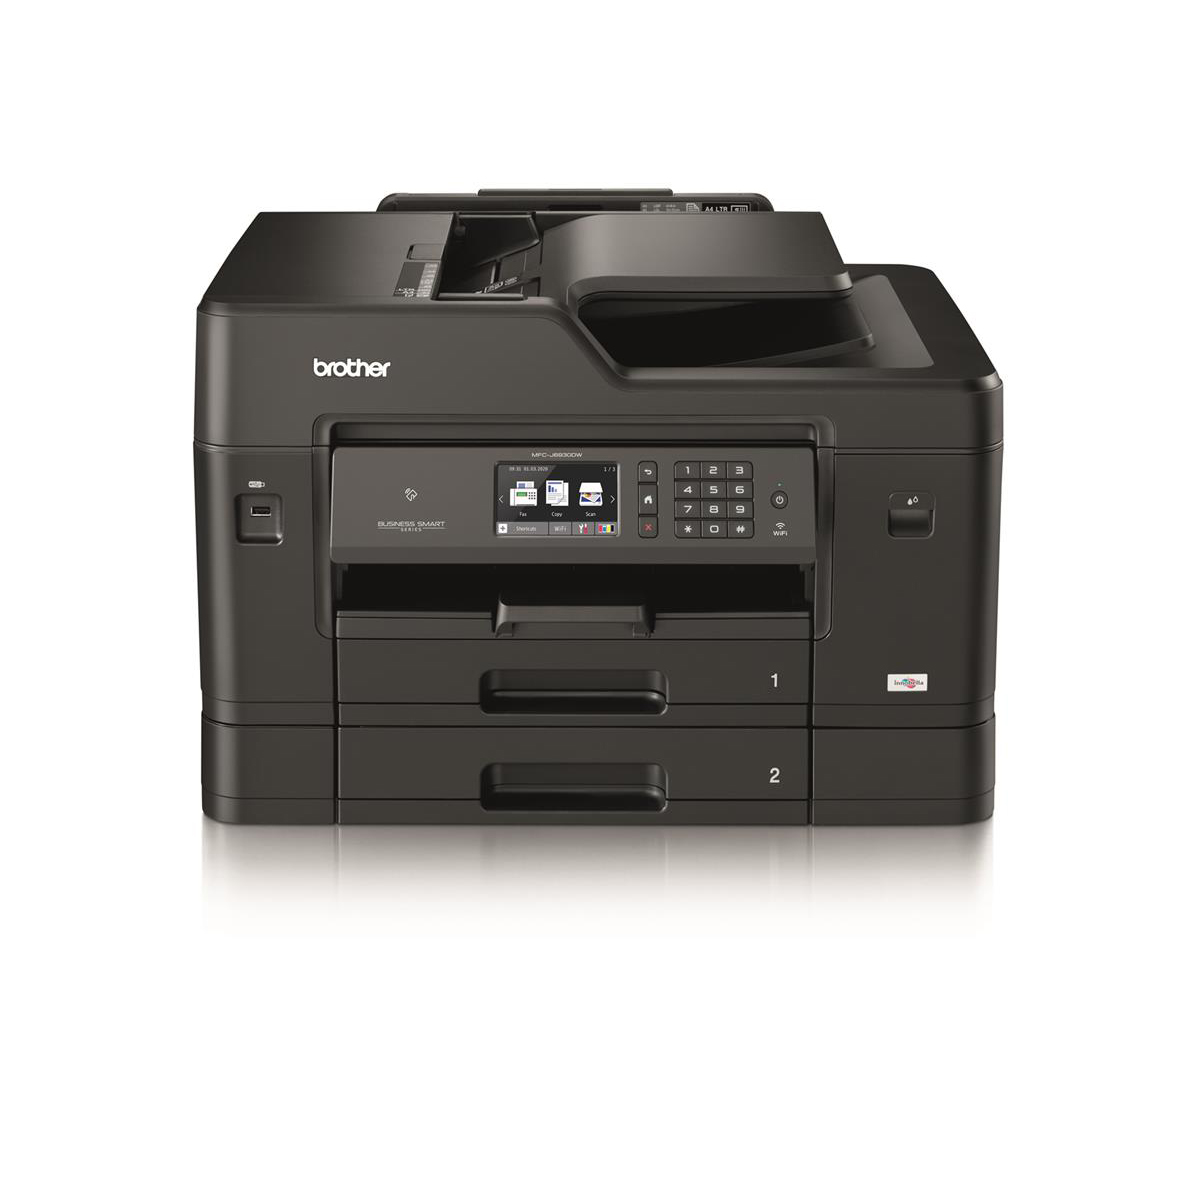 Multi function printers Brother Colour Multifunction A3 Inkjet Printer Ref MFCJ6930DWZU1